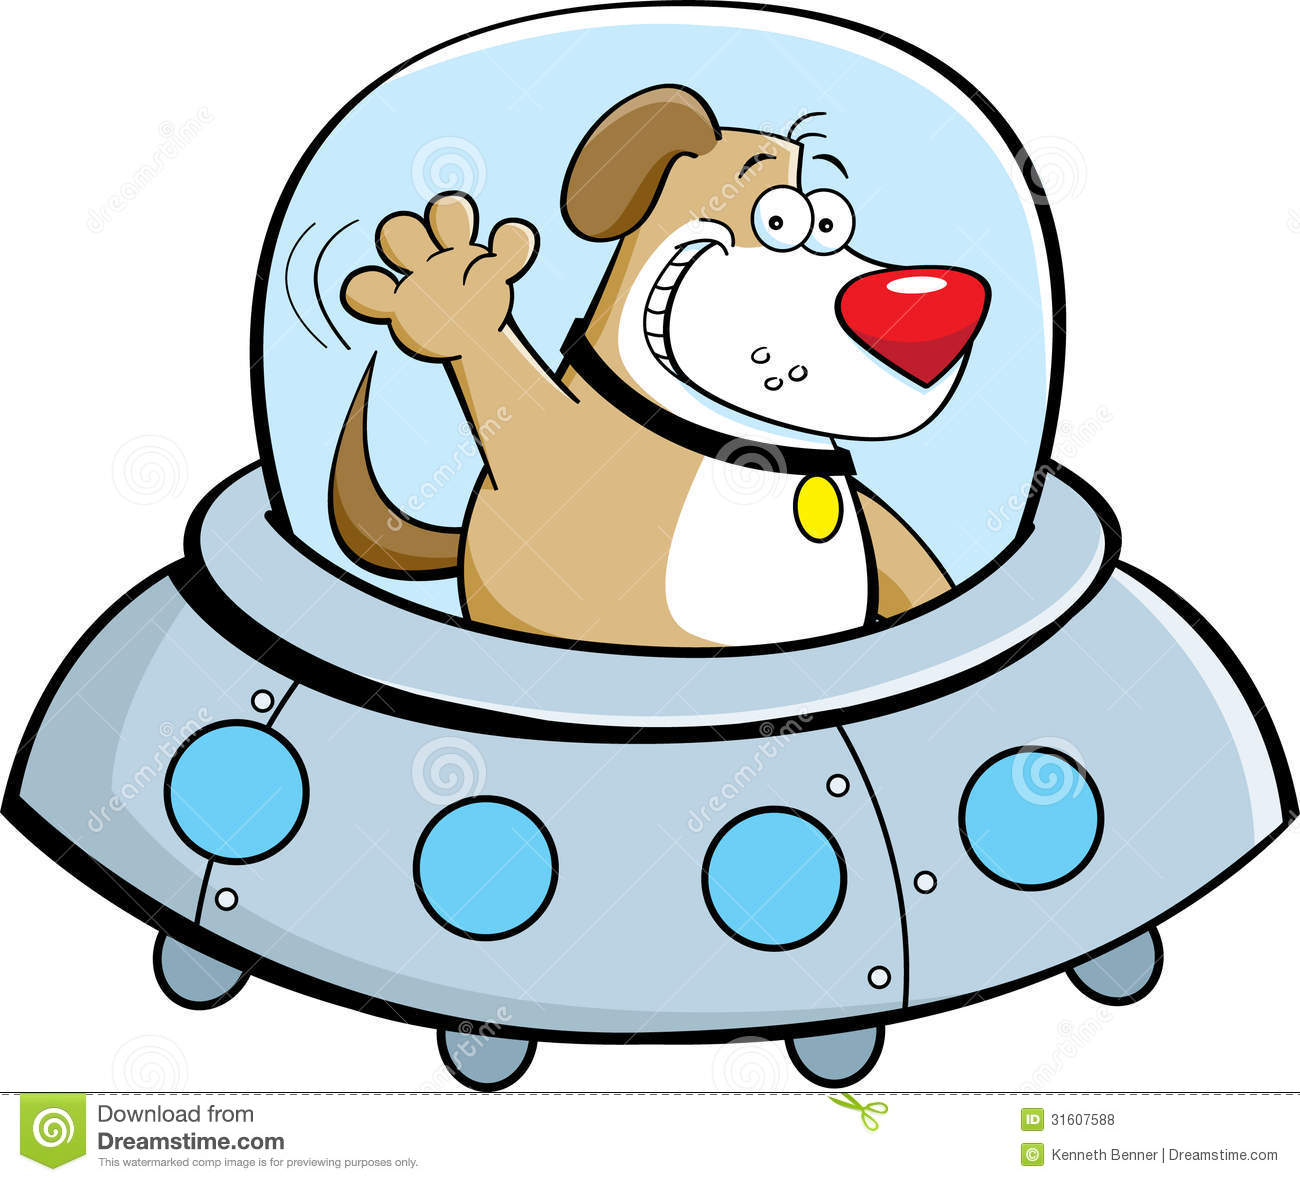 Cartoon Dog In A Spaceship Royalty Free Stock Photos - Image: 31607588